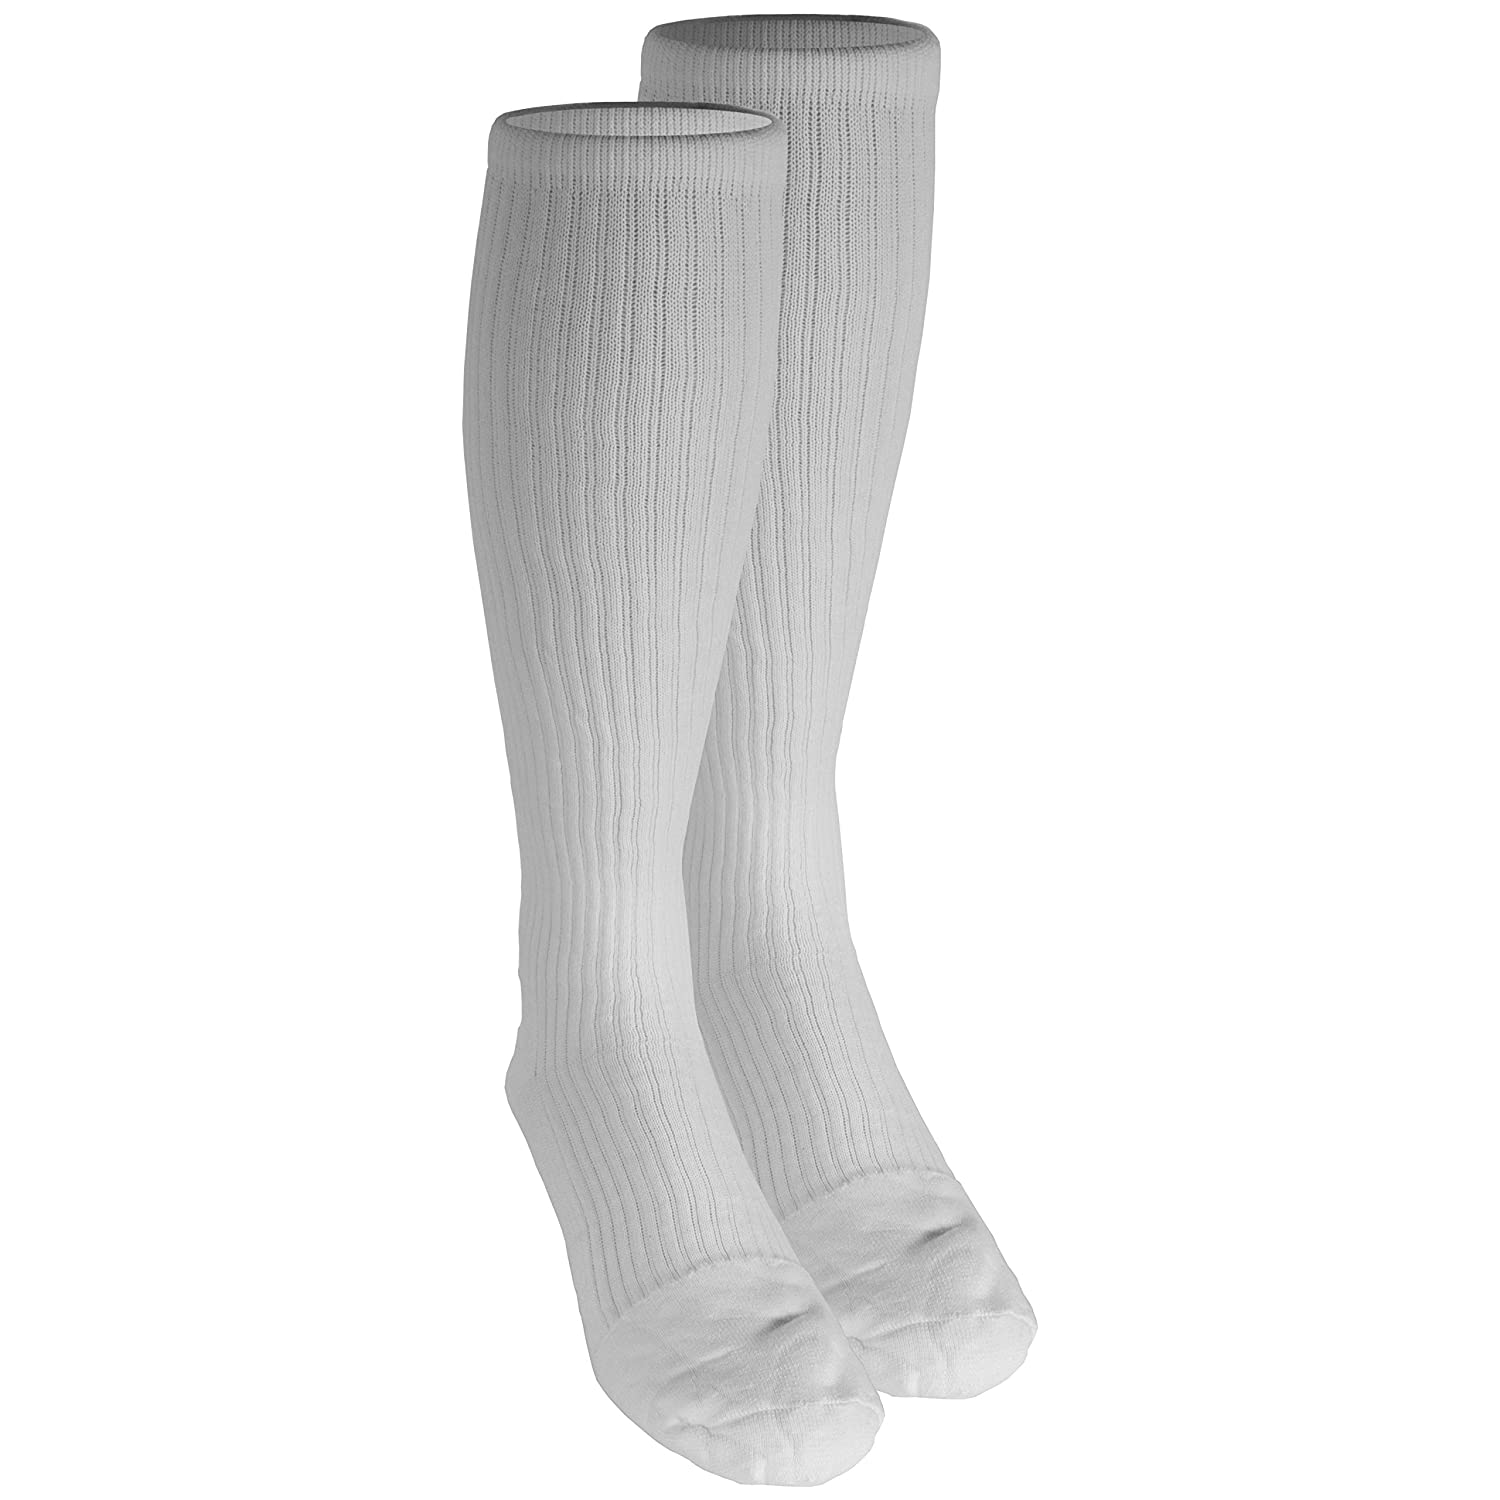 Amazon.com: Truform Mens 15-20 mmHg Knee High Cushioned Athletic Support Compression Socks, White, Medium: Health & Personal Care